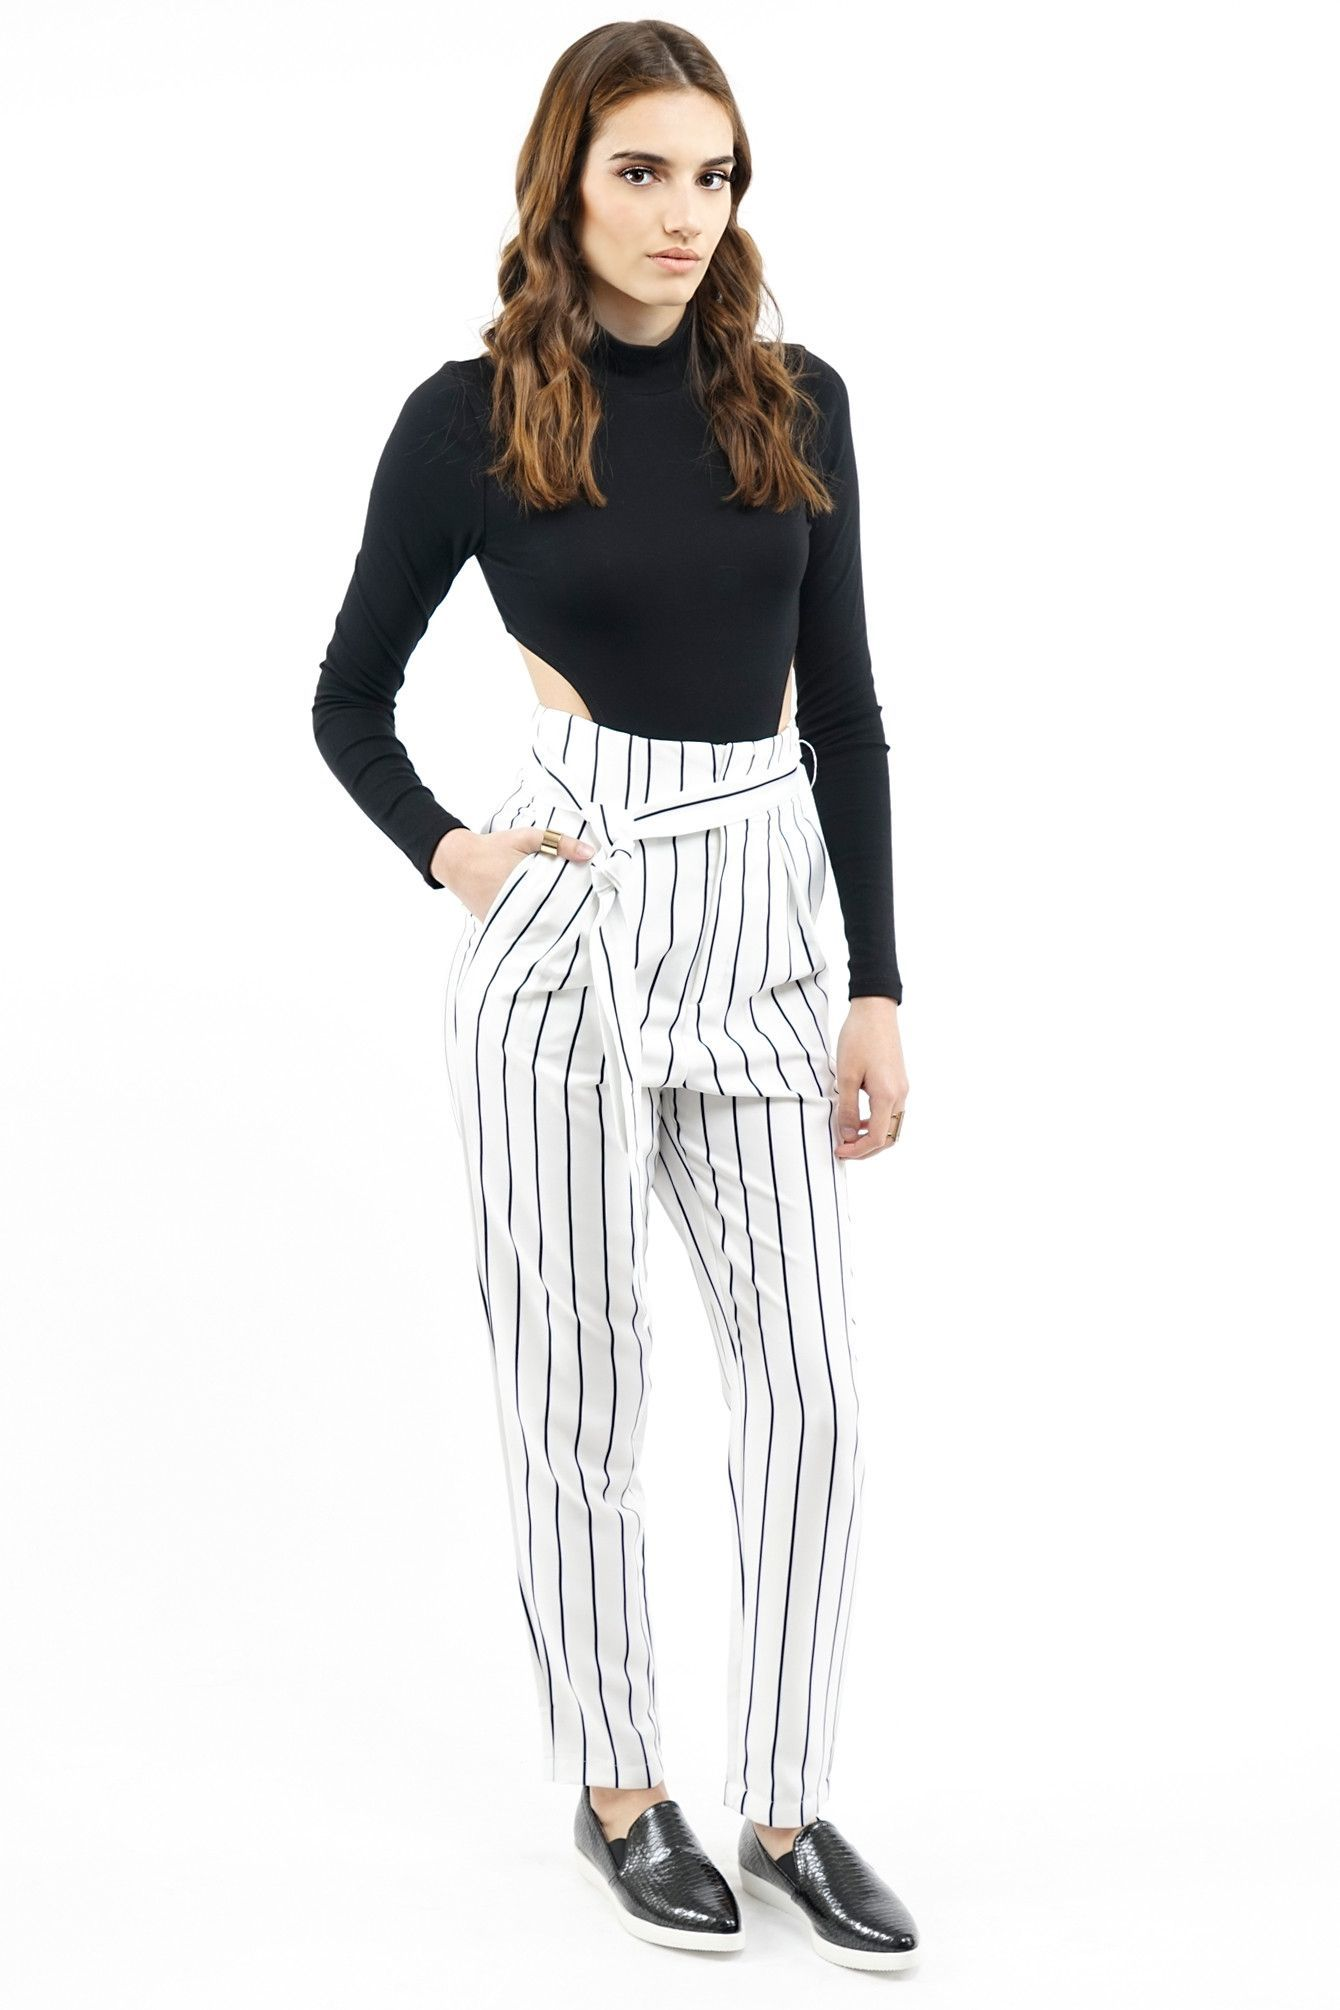 086ce61c53d EDITOR S NOTES   DETAILS - Black-White - Vertical Stripes - High-waisted -  Trousers Harem pants style - 95% Polyester 5% Spandex